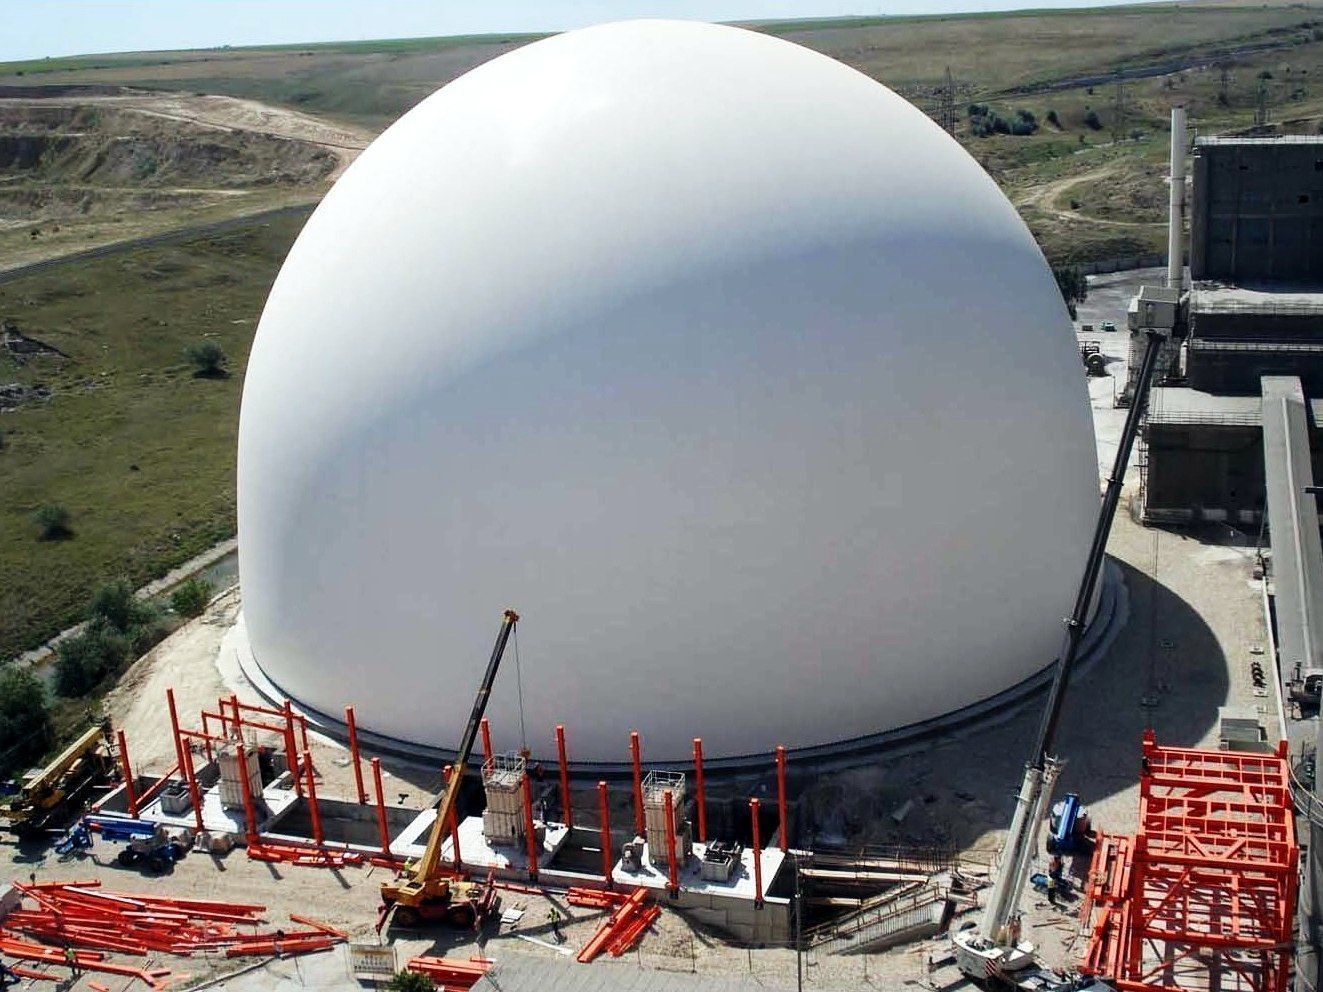 Dome inflation